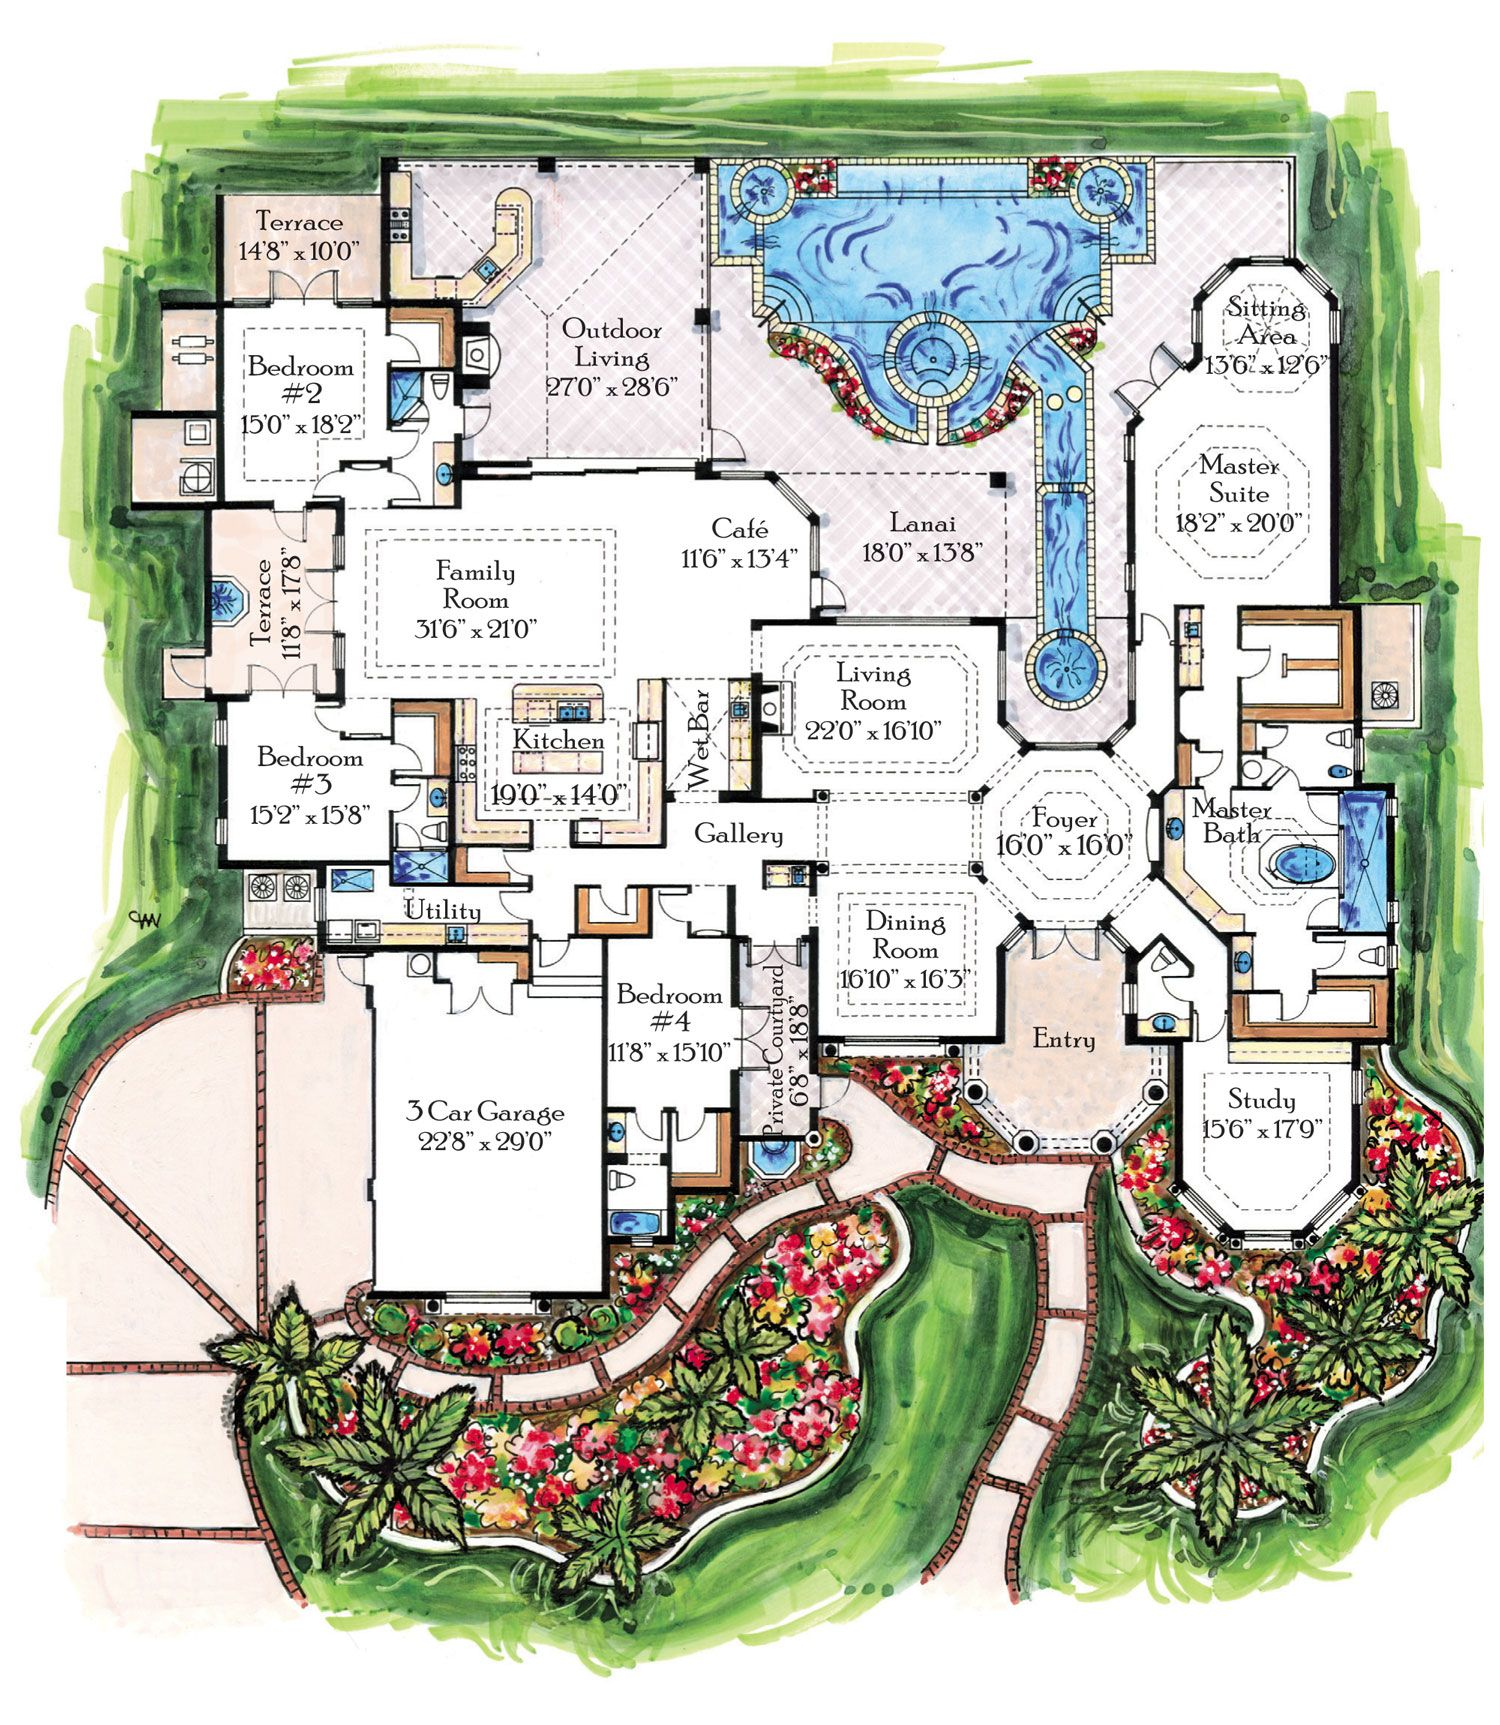 1000+ images about ool Floor Plans on Pinterest - ^